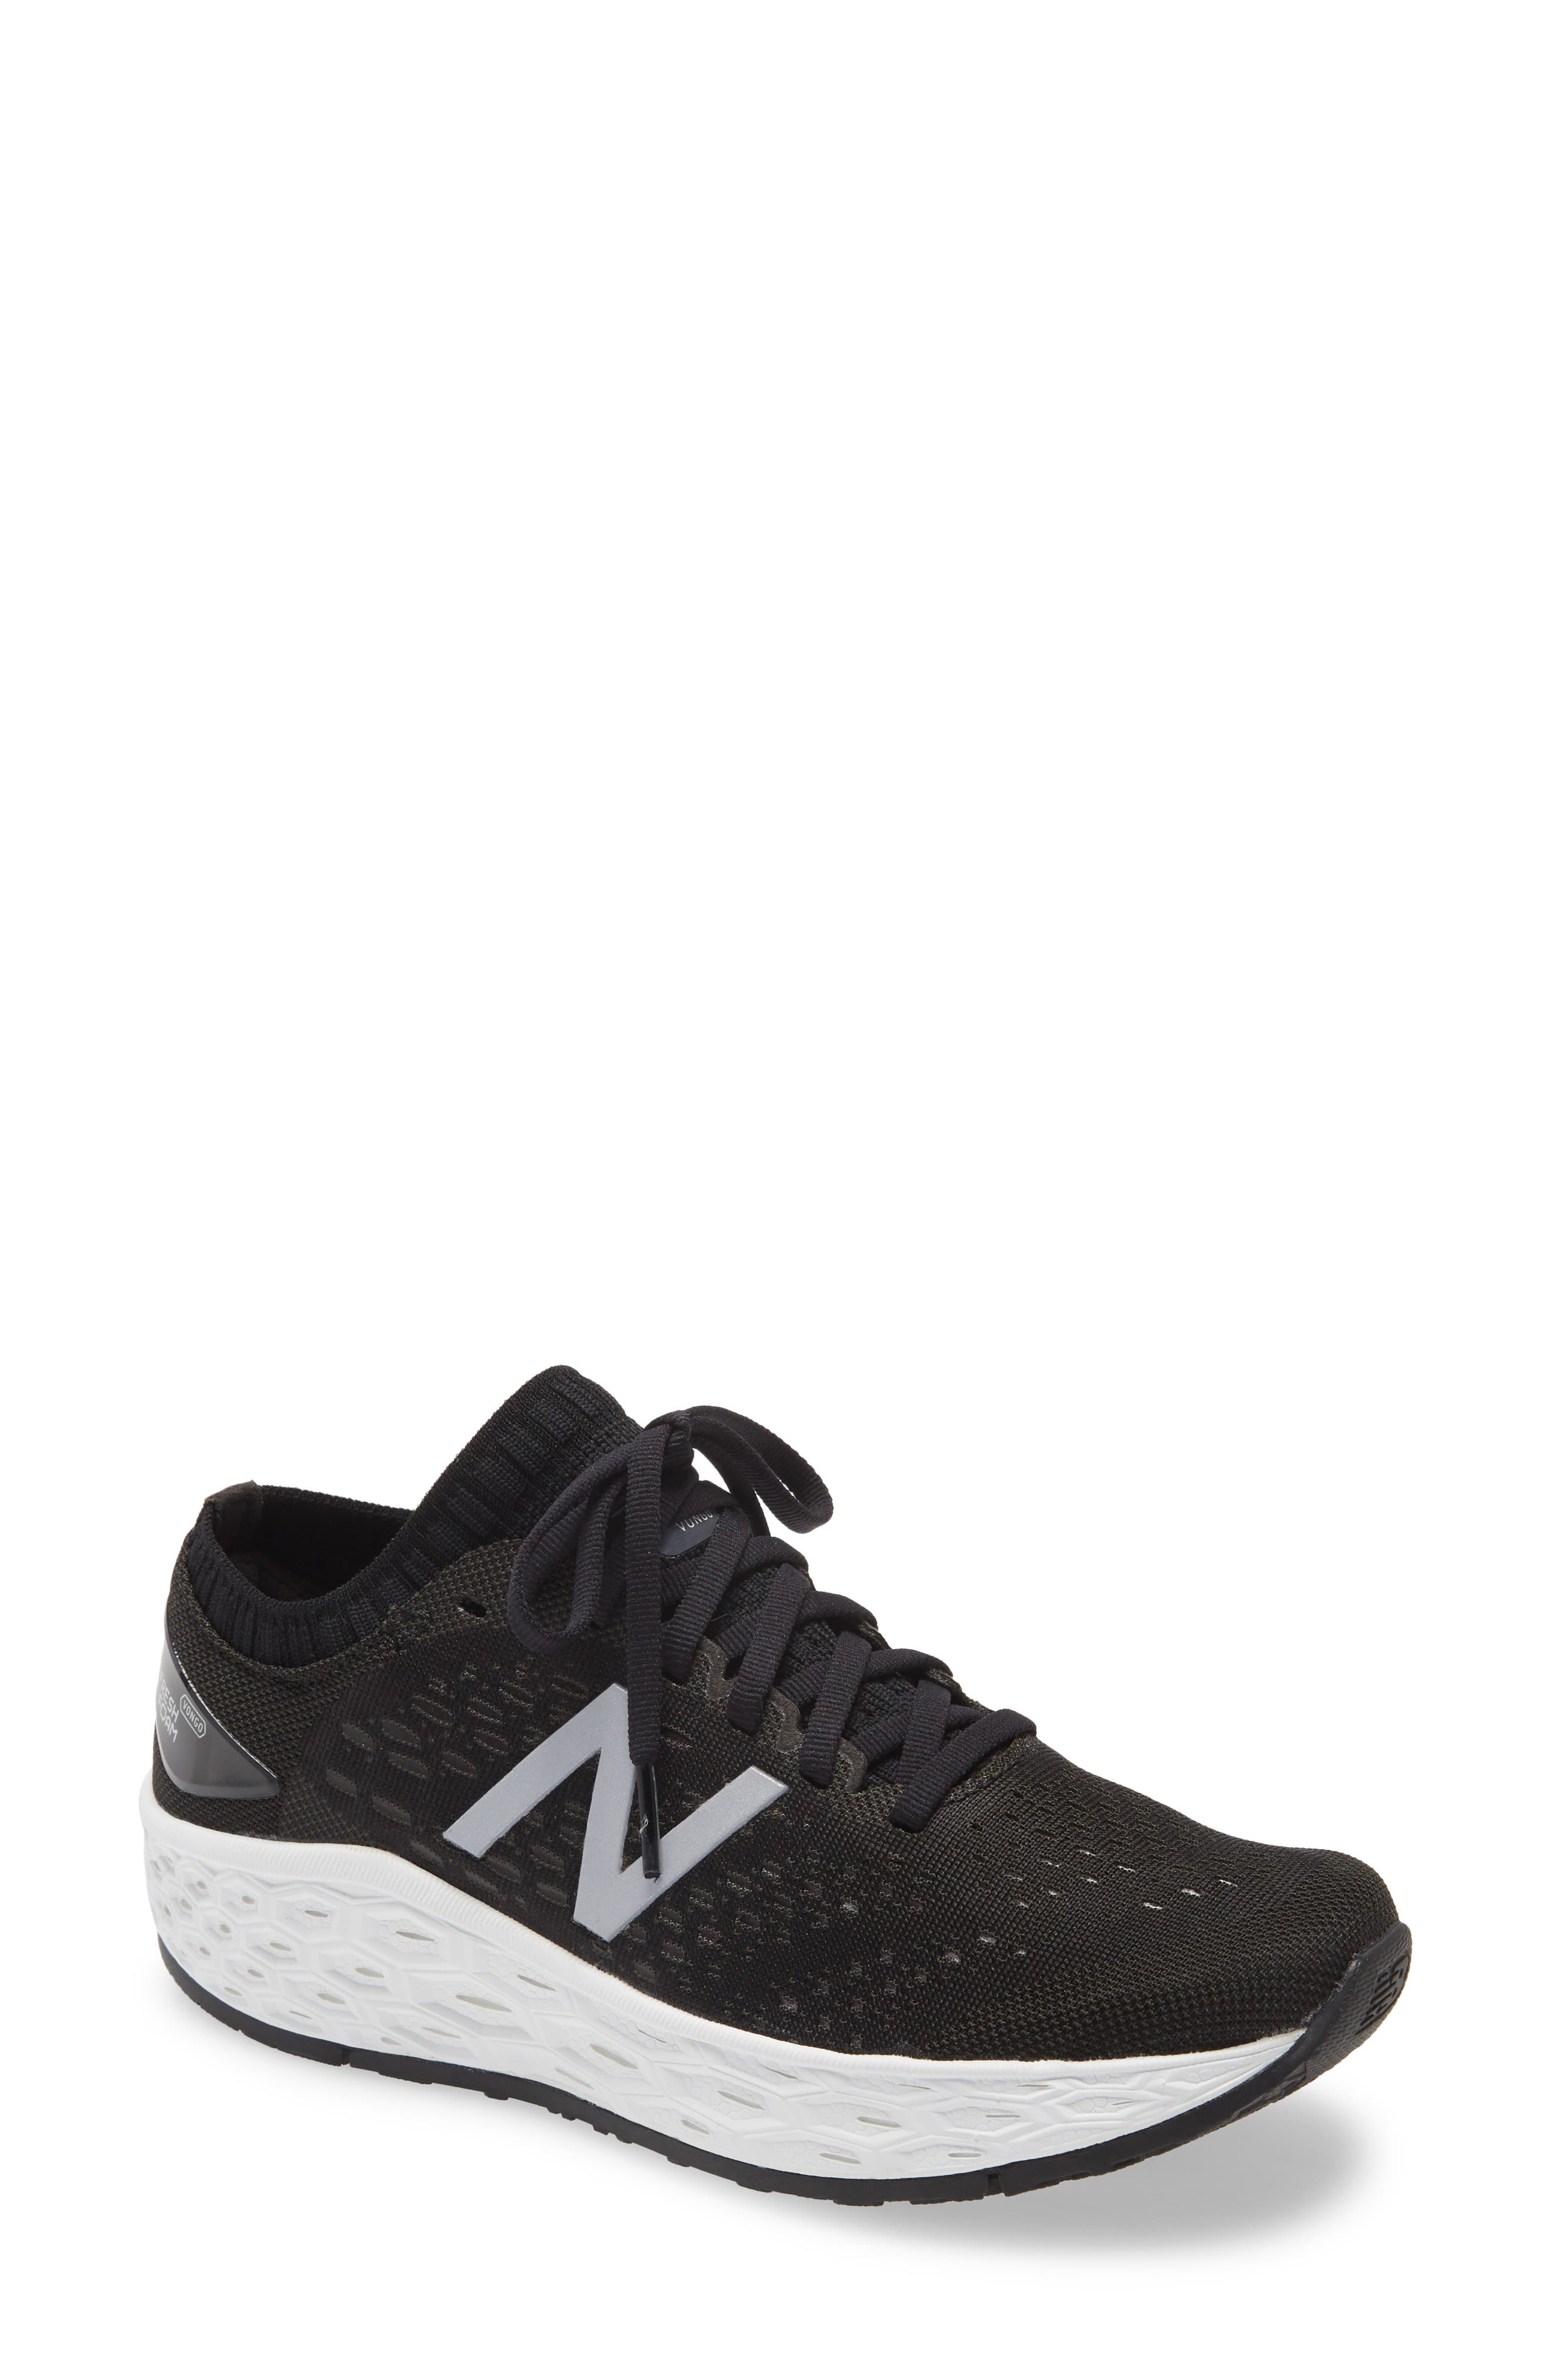 Women's New Balance Shoes | Nordstrom